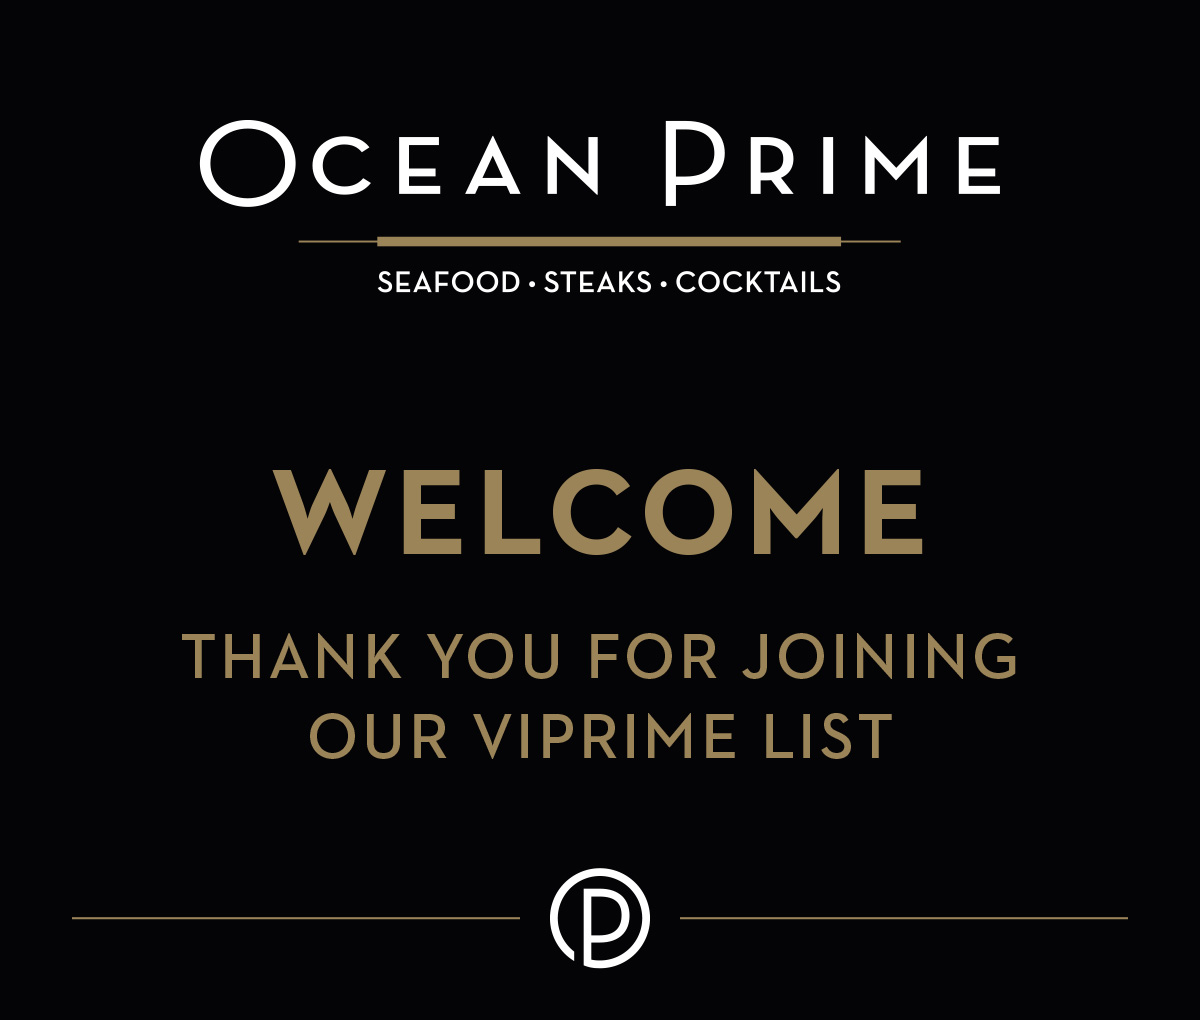 Ocean Prime logo | Welcome - Thank you for joining our VIPrime list